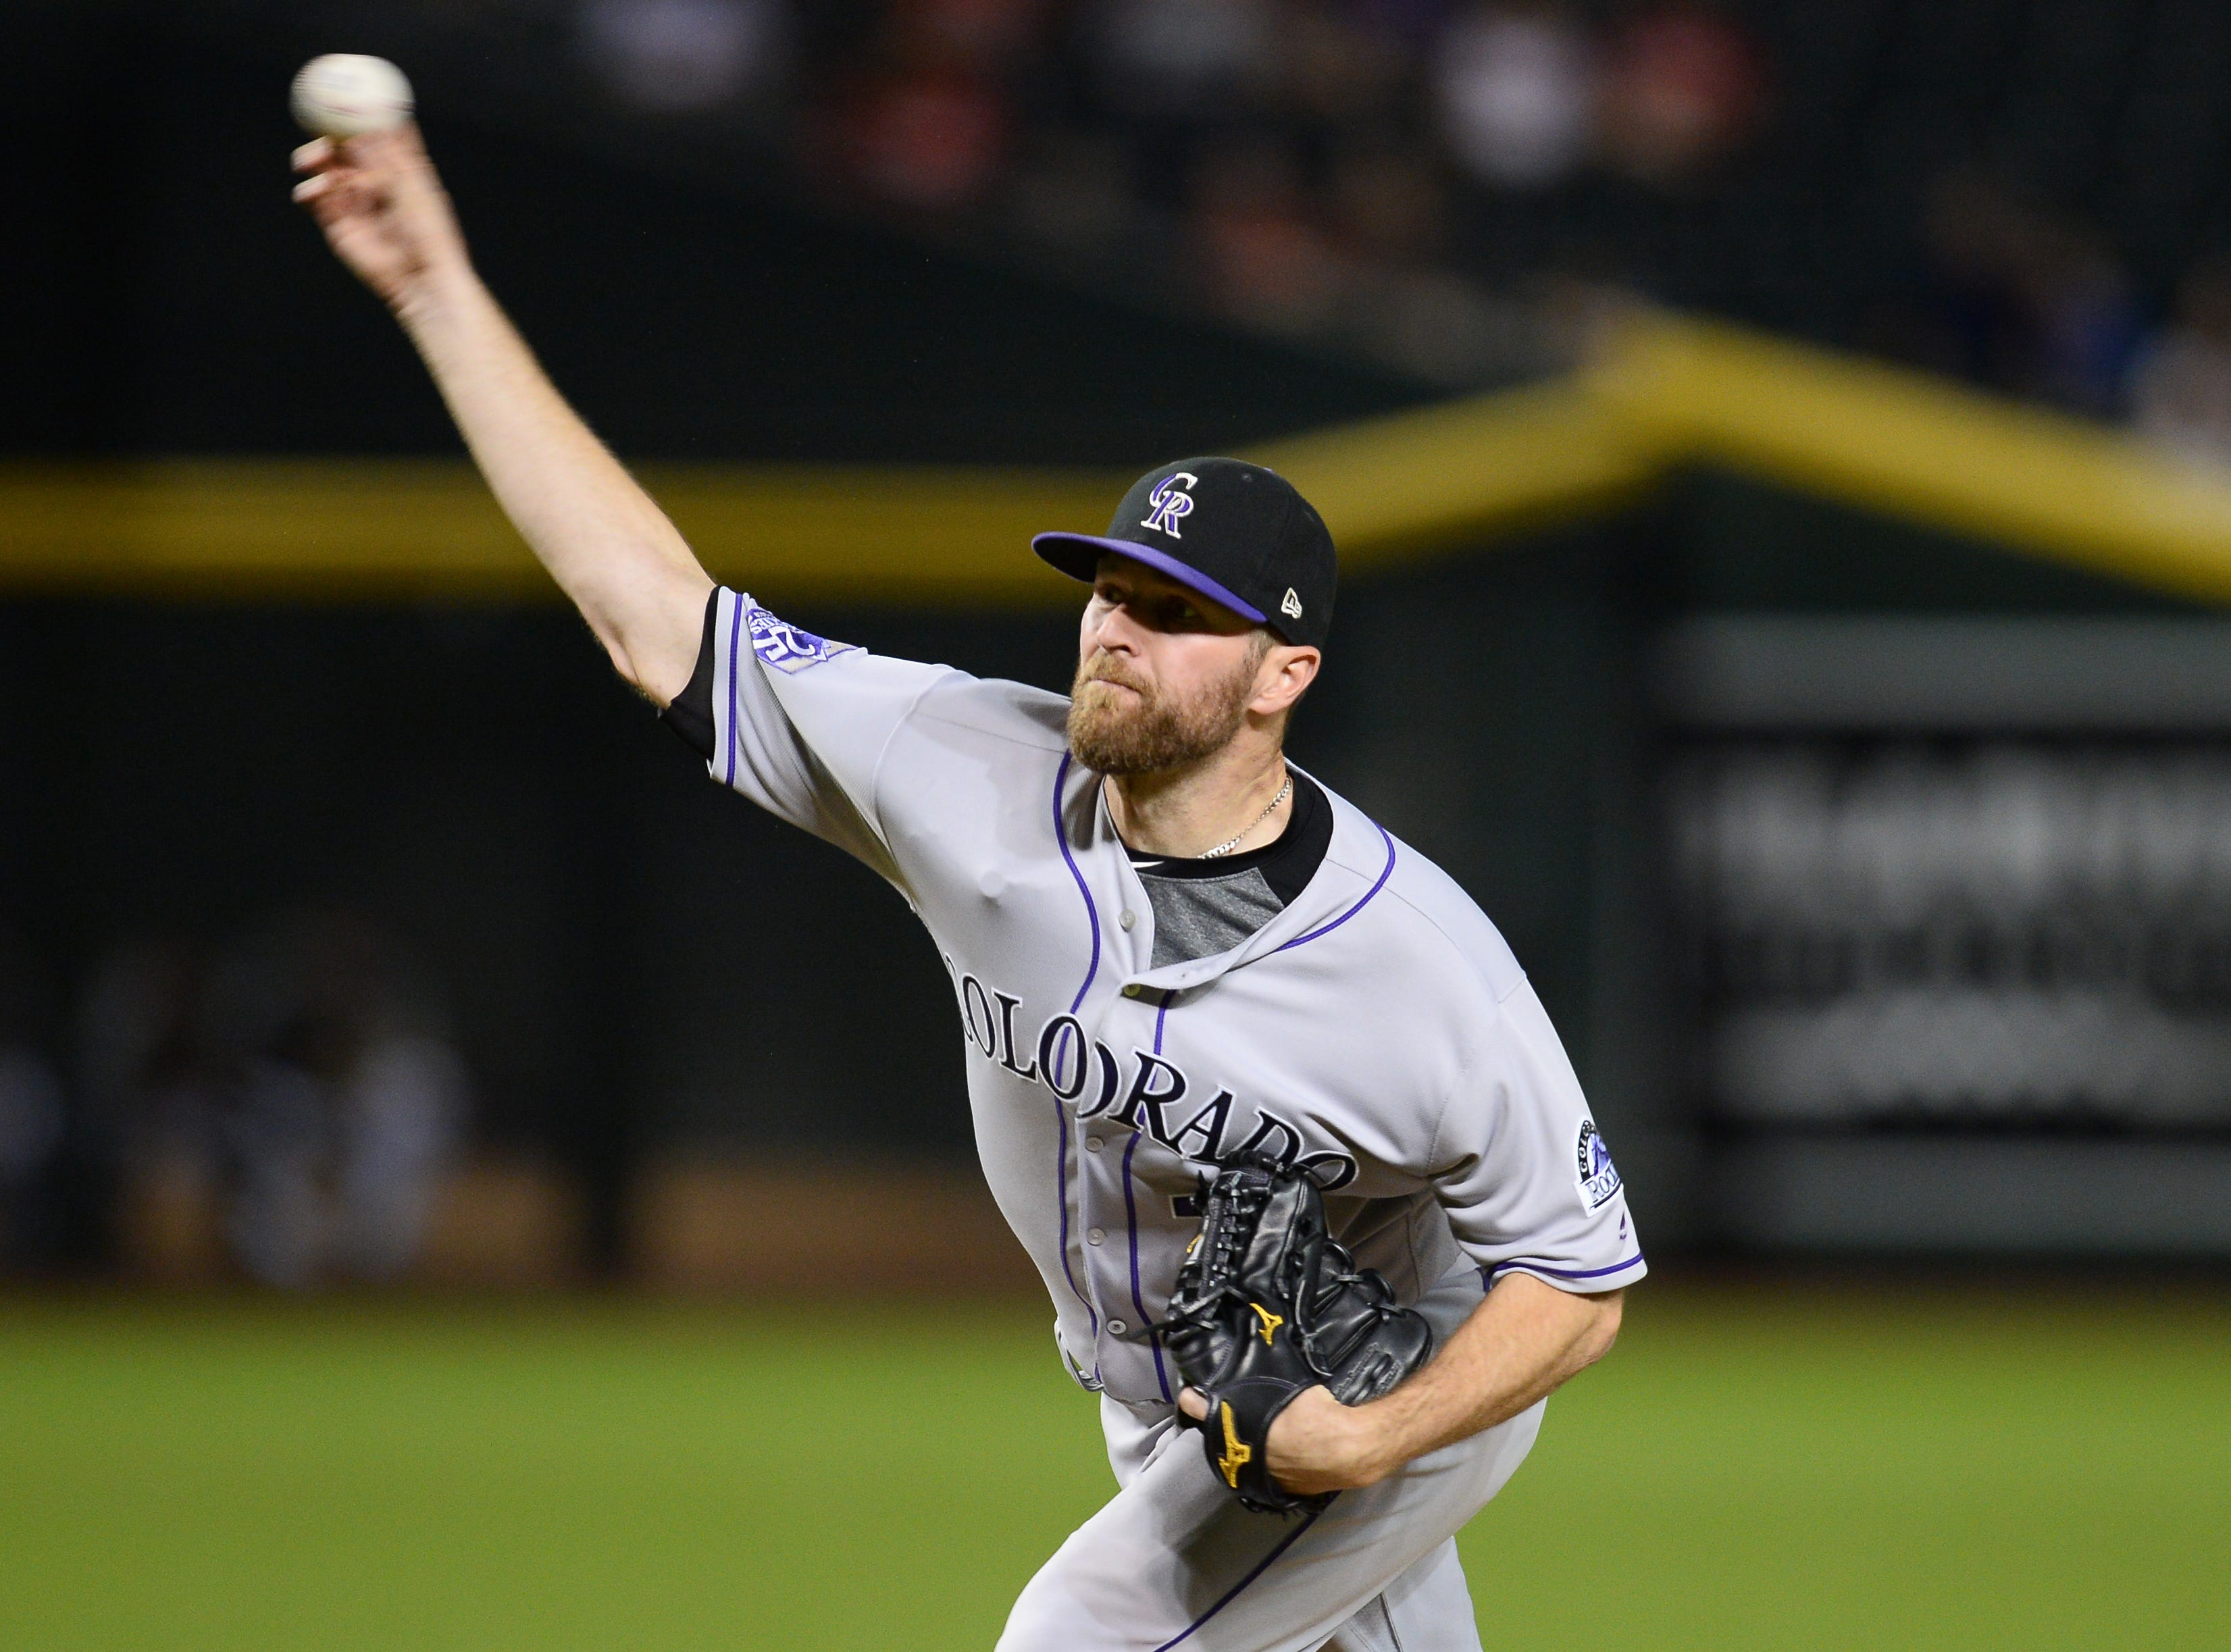 Sep 21, 2018; Phoenix, AZ, USA; Colorado Rockies relief pitcher Wade Davis (71) pitches against the Arizona Diamondbacks during the ninth inning at Chase Field.